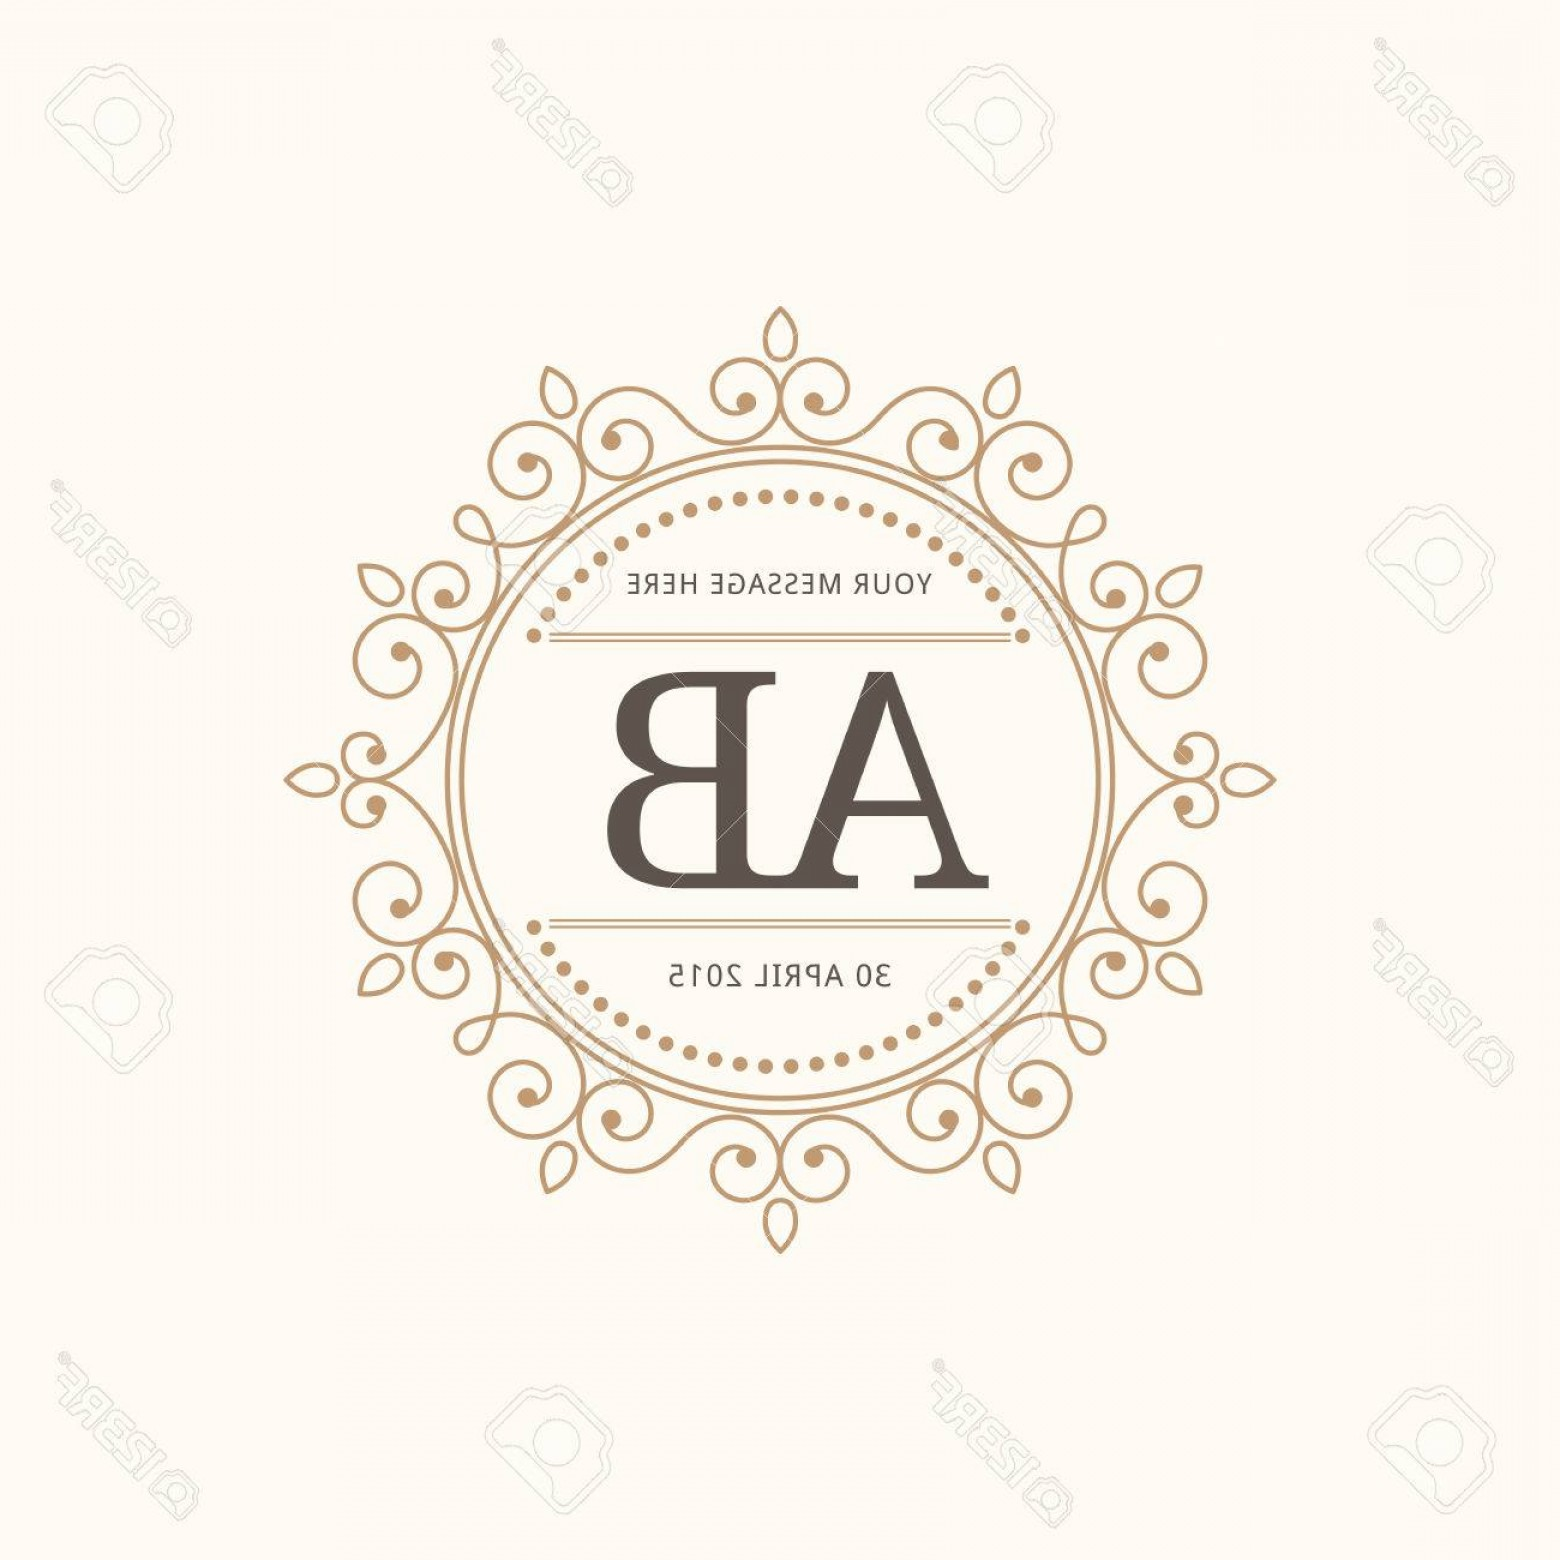 Elegant Wedding Vector Graphics: Photostock Vector Elegant Vintage Monogram Design Template For One Or Two Letters Wedding Monogram Calligraphic Elegan